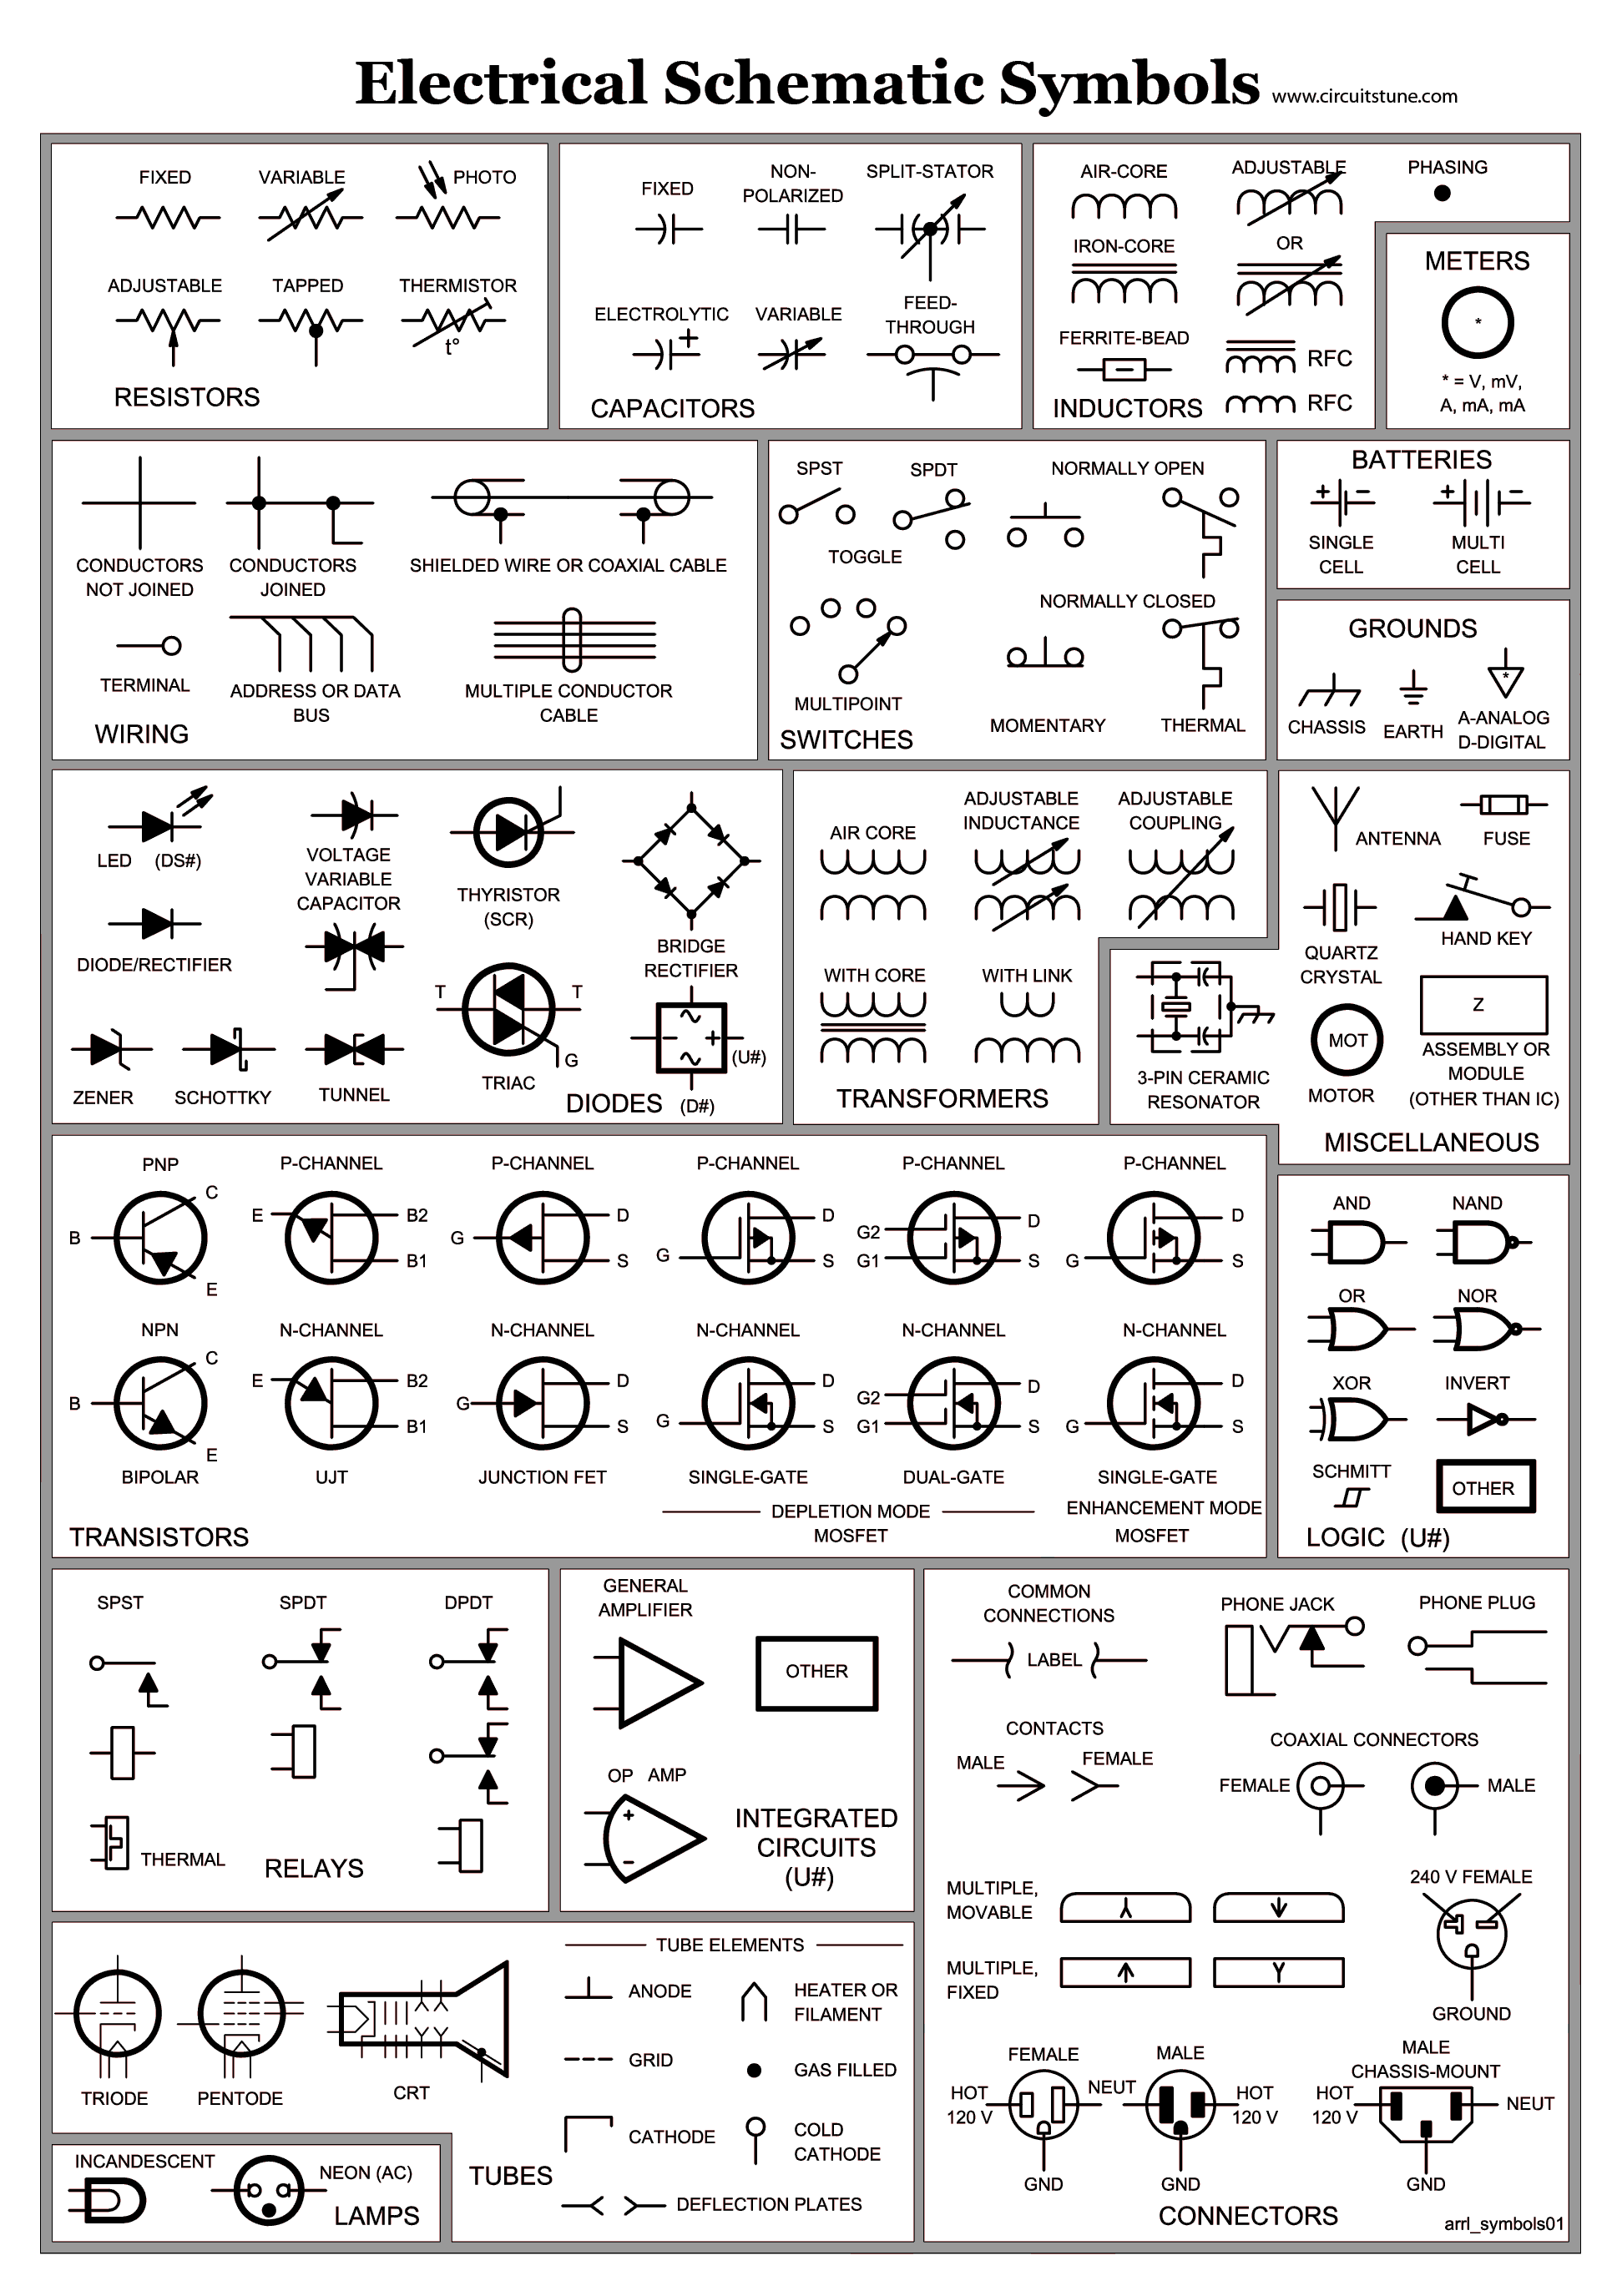 electrical schematic symbols wire diagram symbols automotive wiring rh pinterest com Electrical Wiring Diagram Symbols Wiring Diagram Symbols Chart